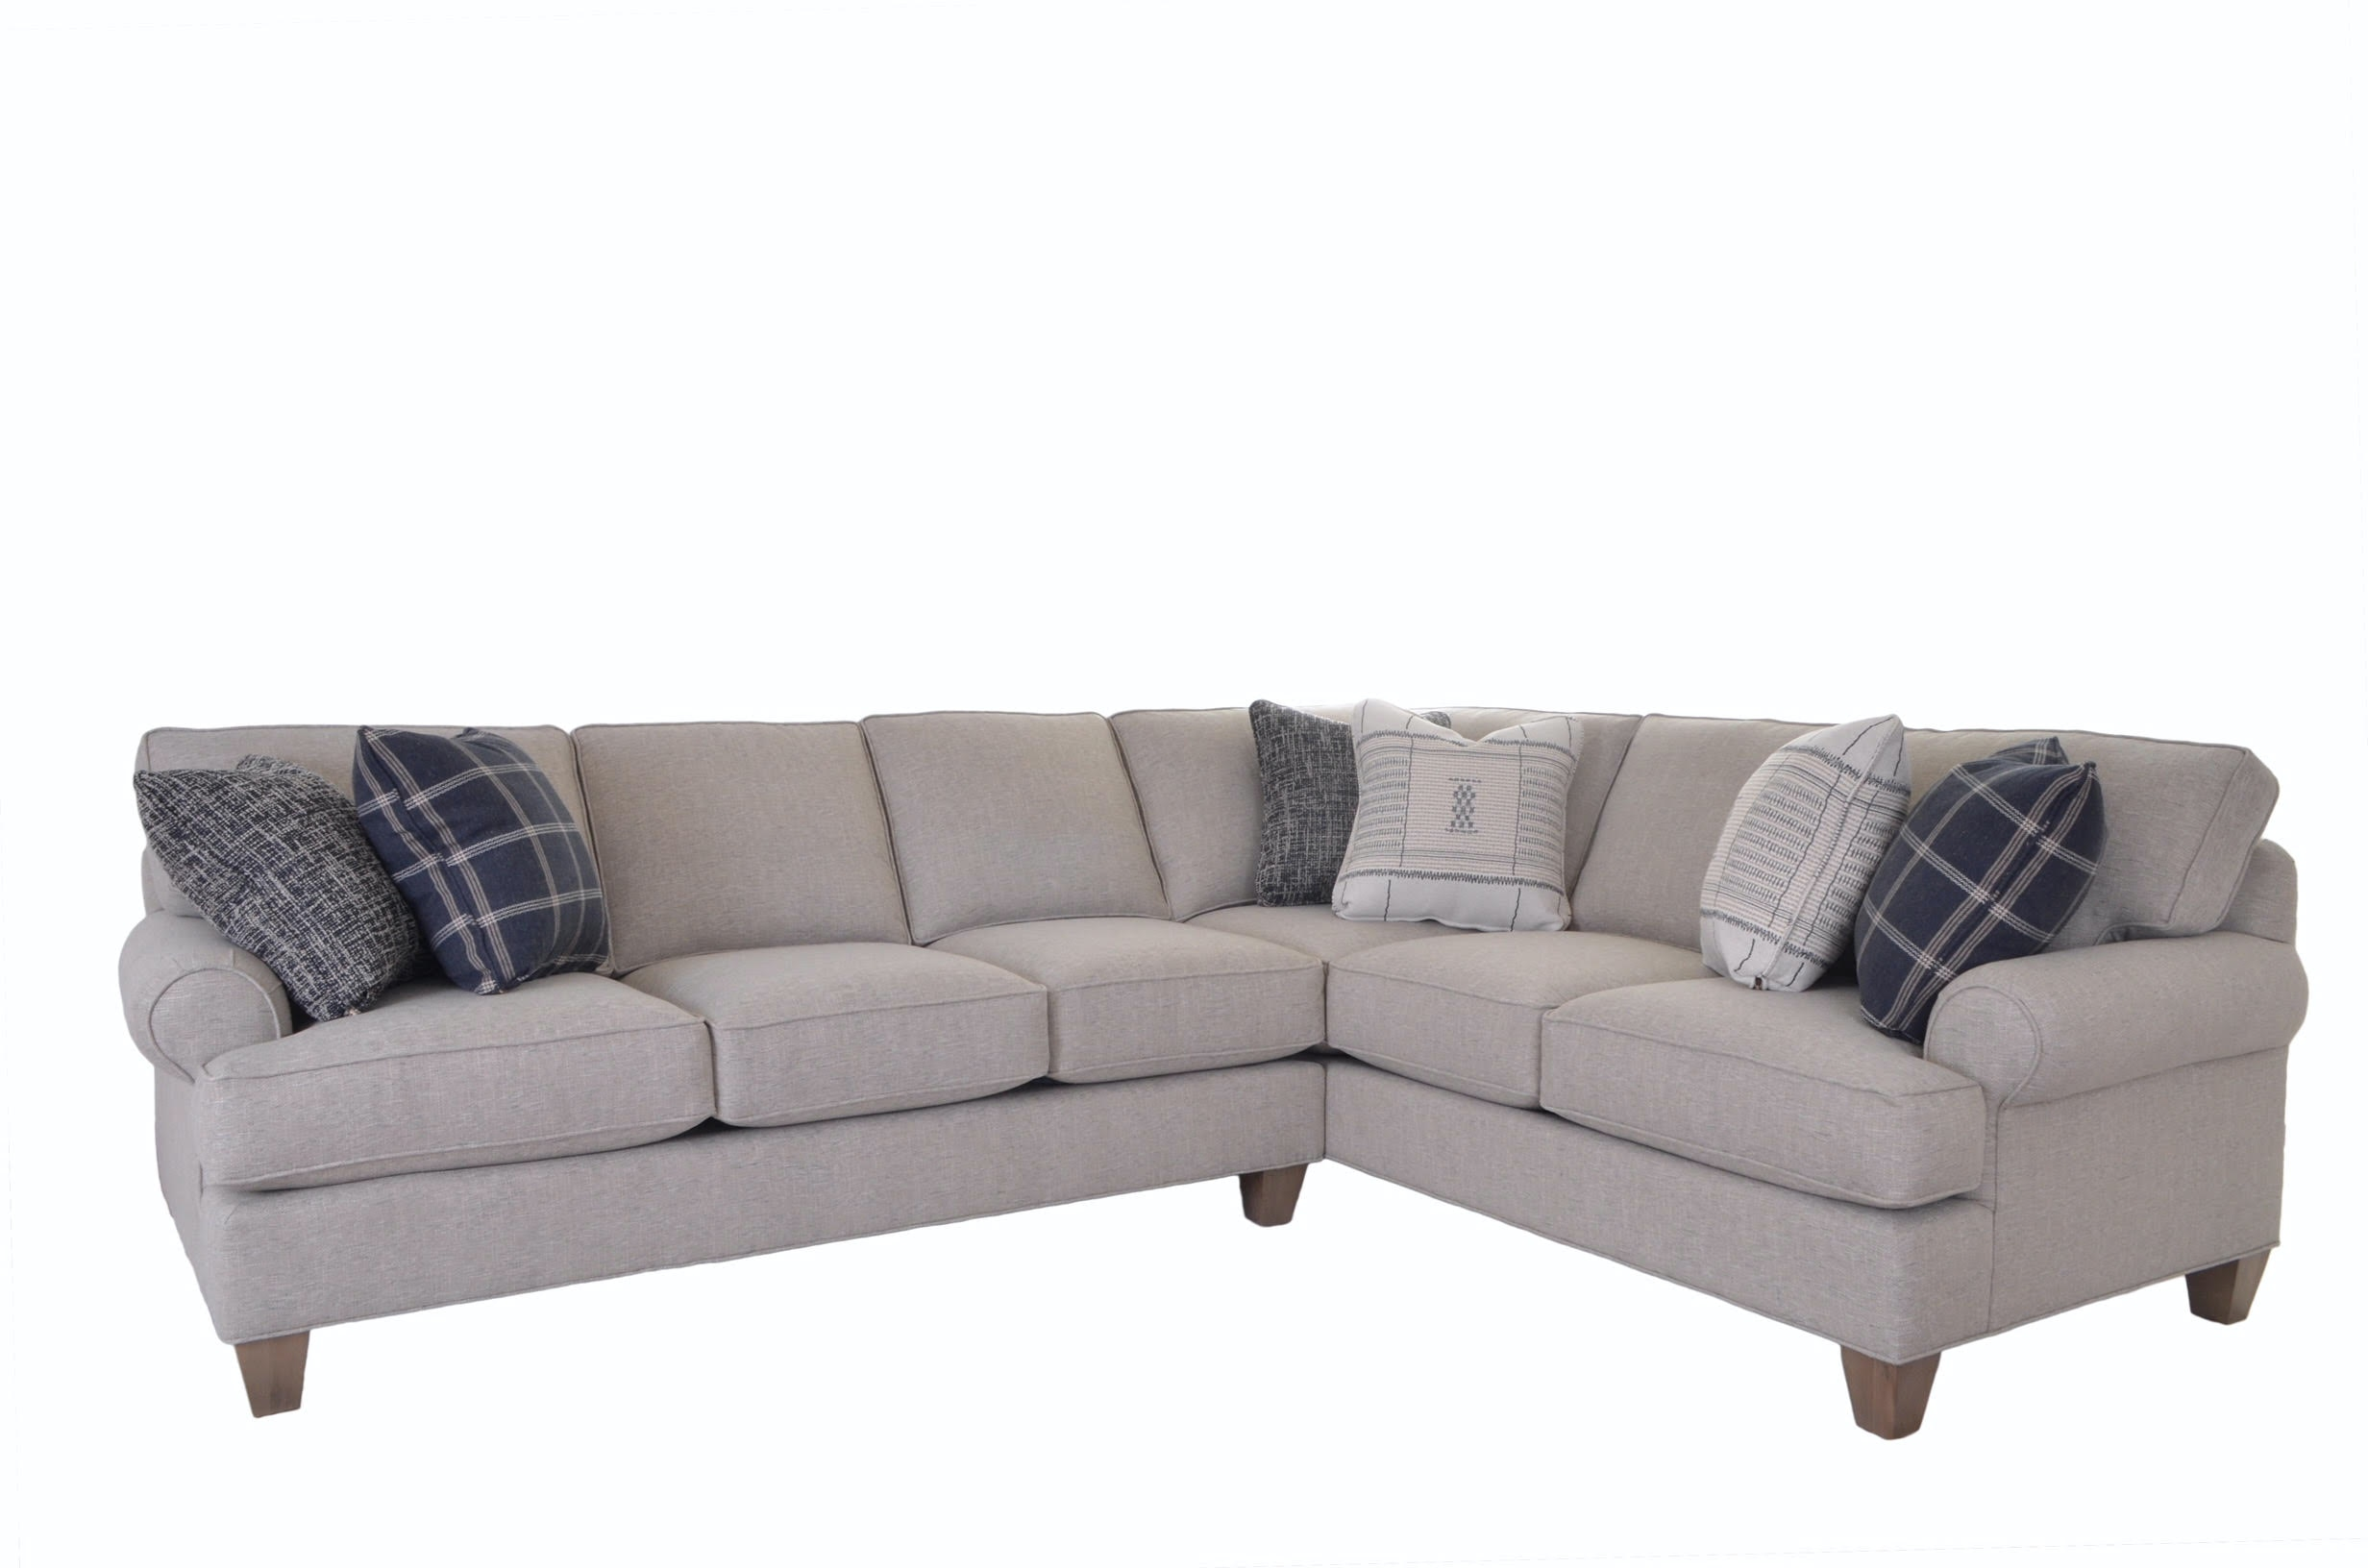 Cozy Life Living Room Sectional With Pillows 783281 84 At Talsma Furniture